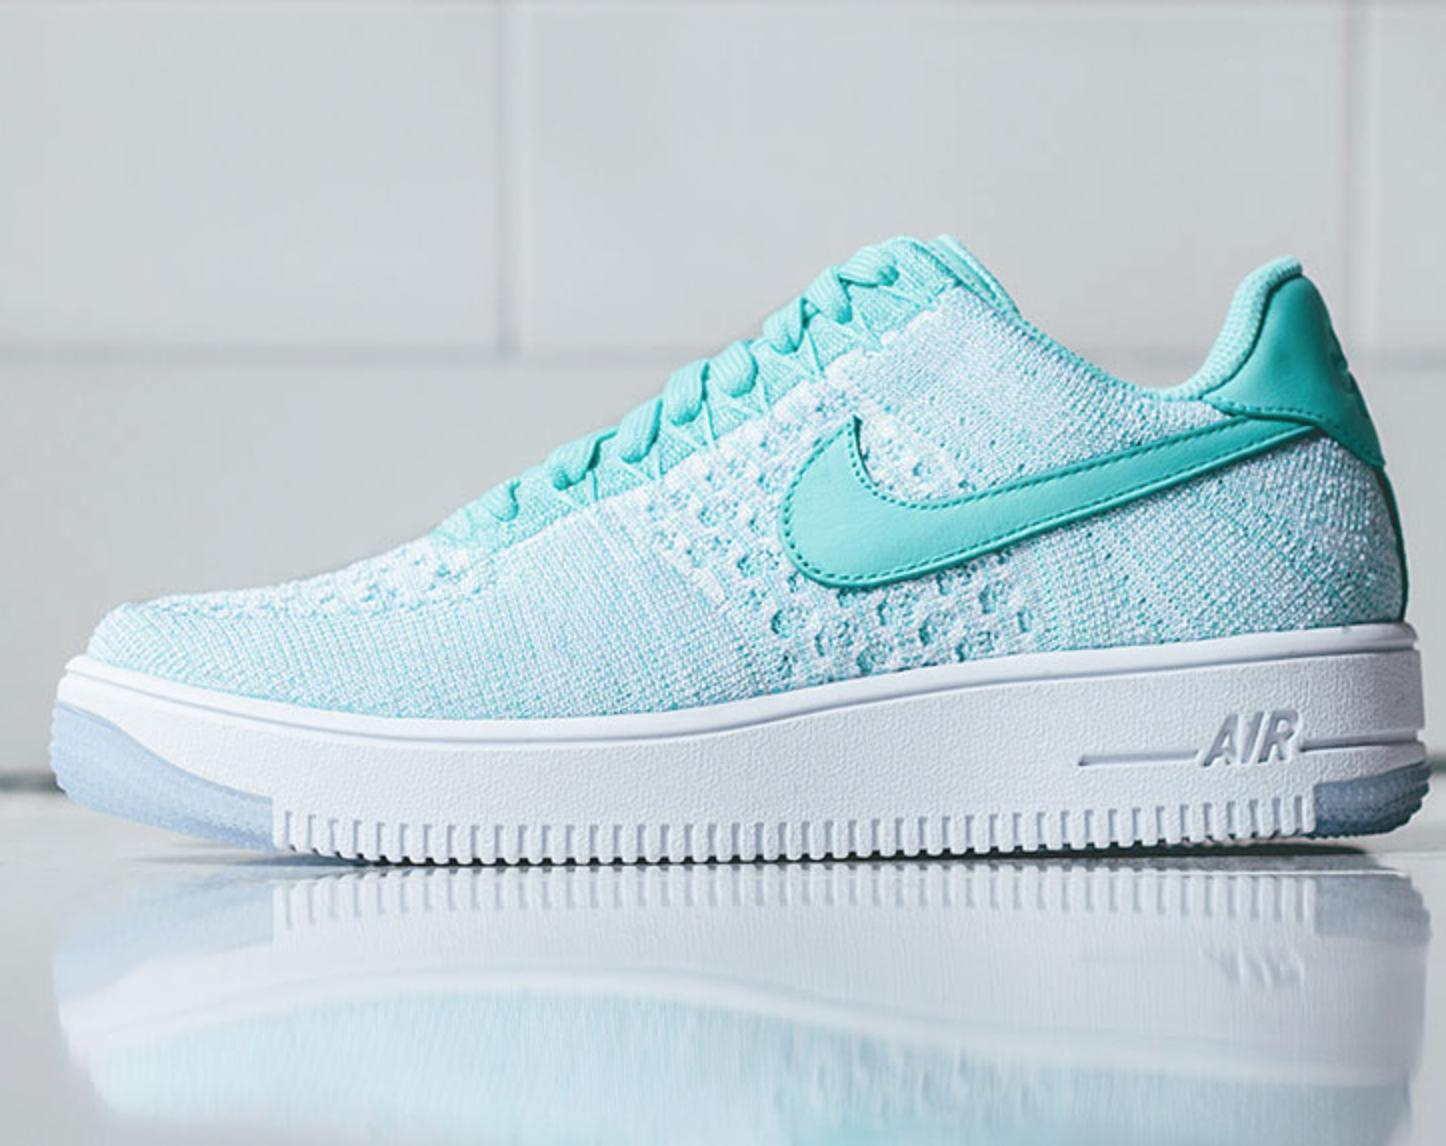 66f9dac69bc $97.47 Women's AIR FORCE 1 ULTRA FLYKNIT LOW On Sale @ Nike Store - Dealmoon